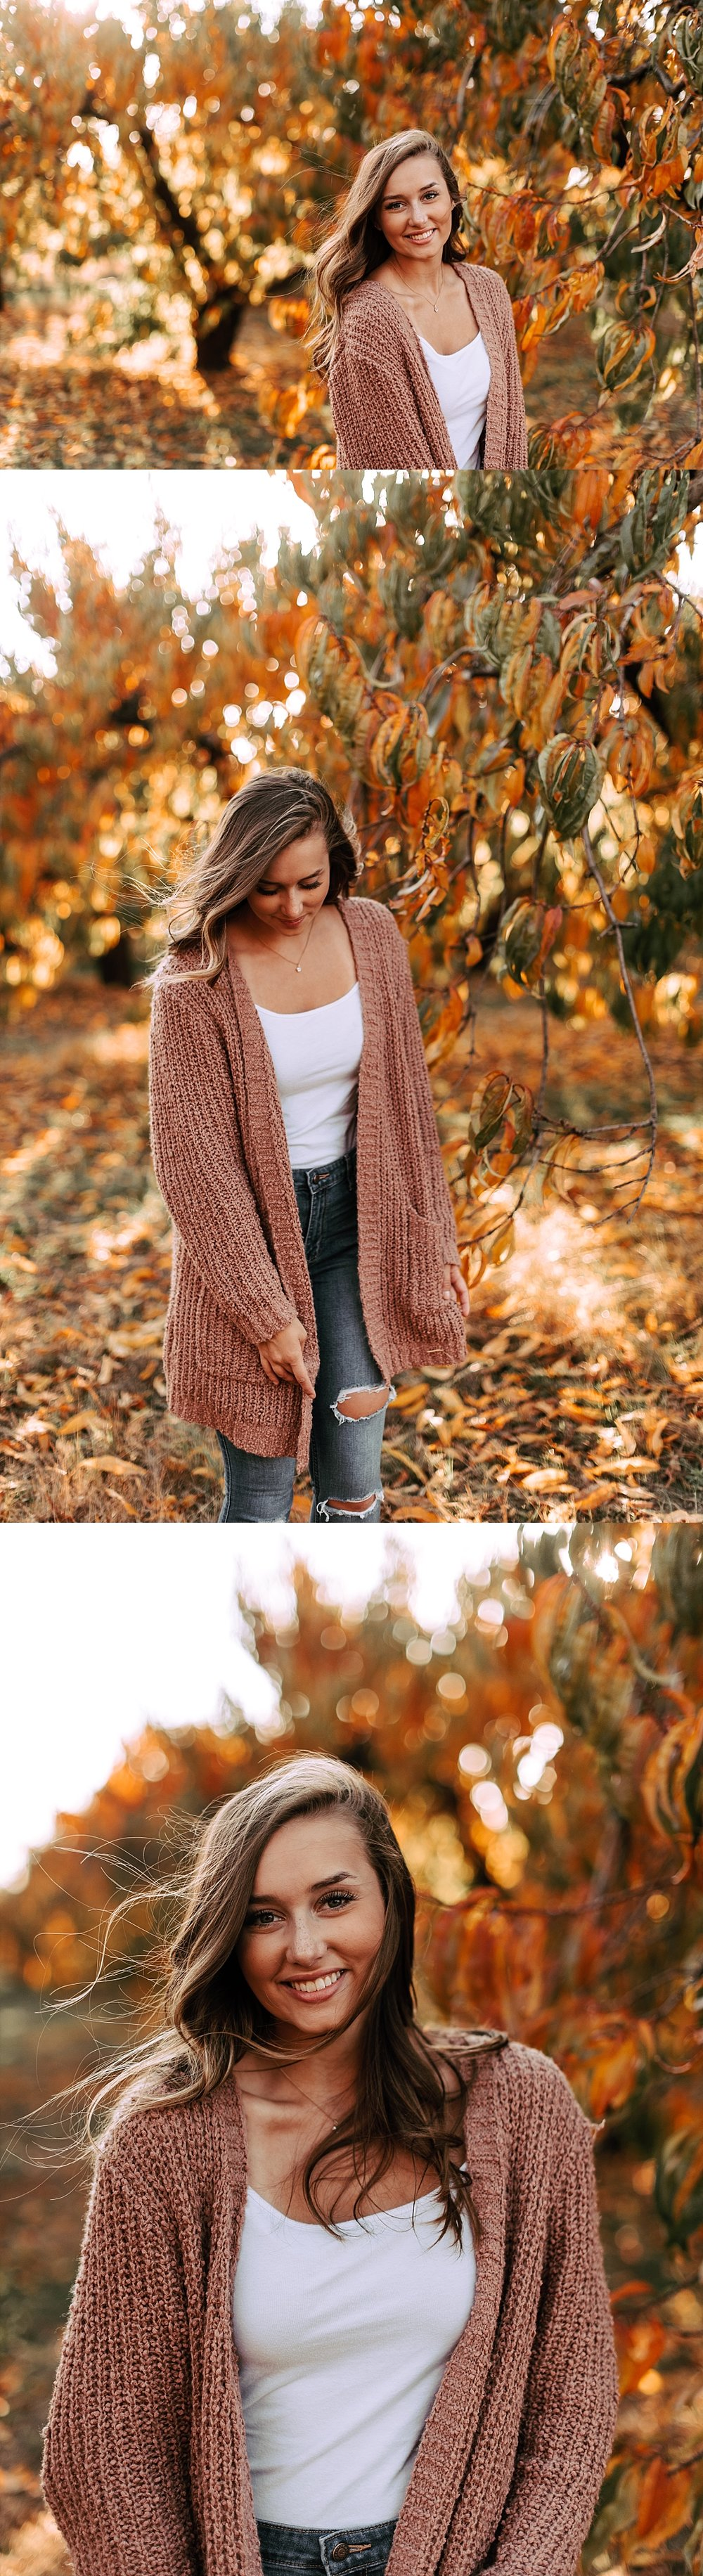 oregon fall senior session_0020.jpg